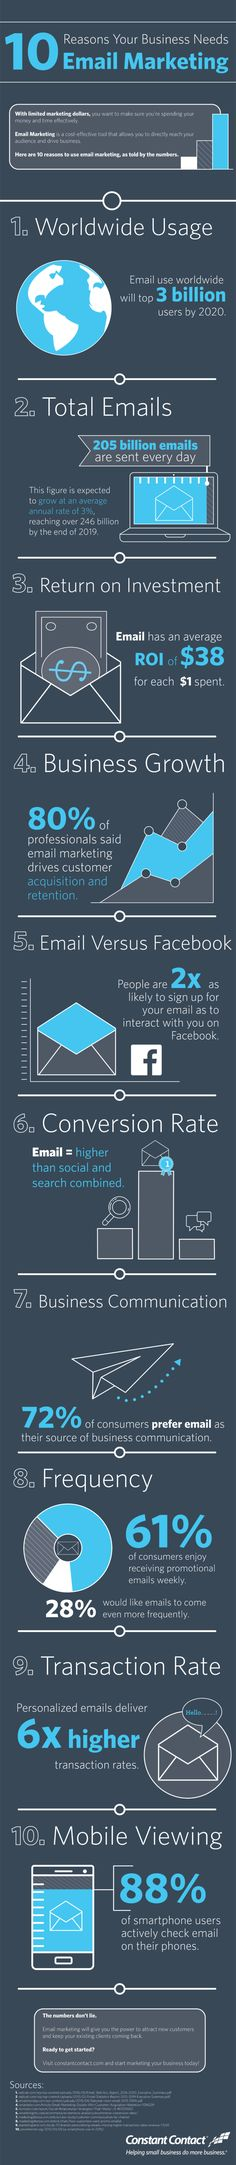 Here are 10 eye-opening email marketing stats that prove email marketing is a valuable tool for small businesses.